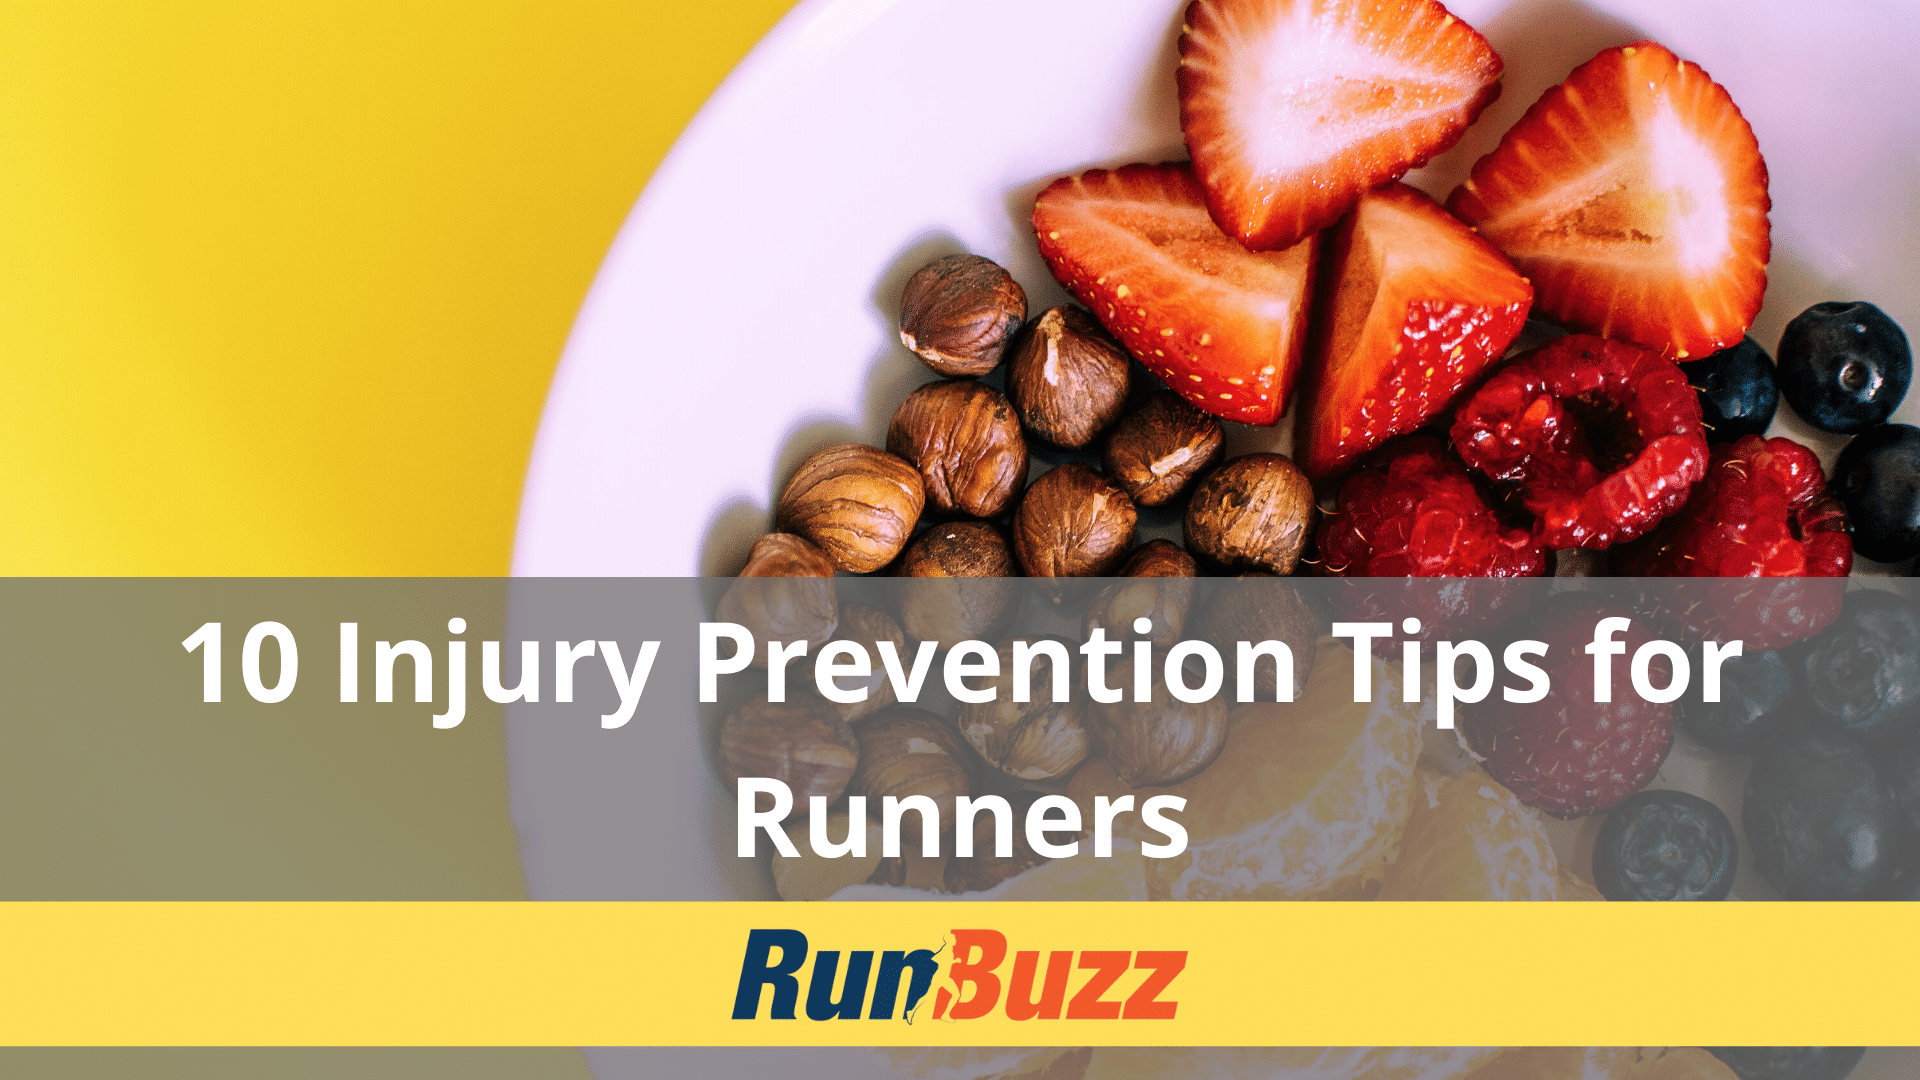 10-Injury-Prevention-Tips-for-Runners